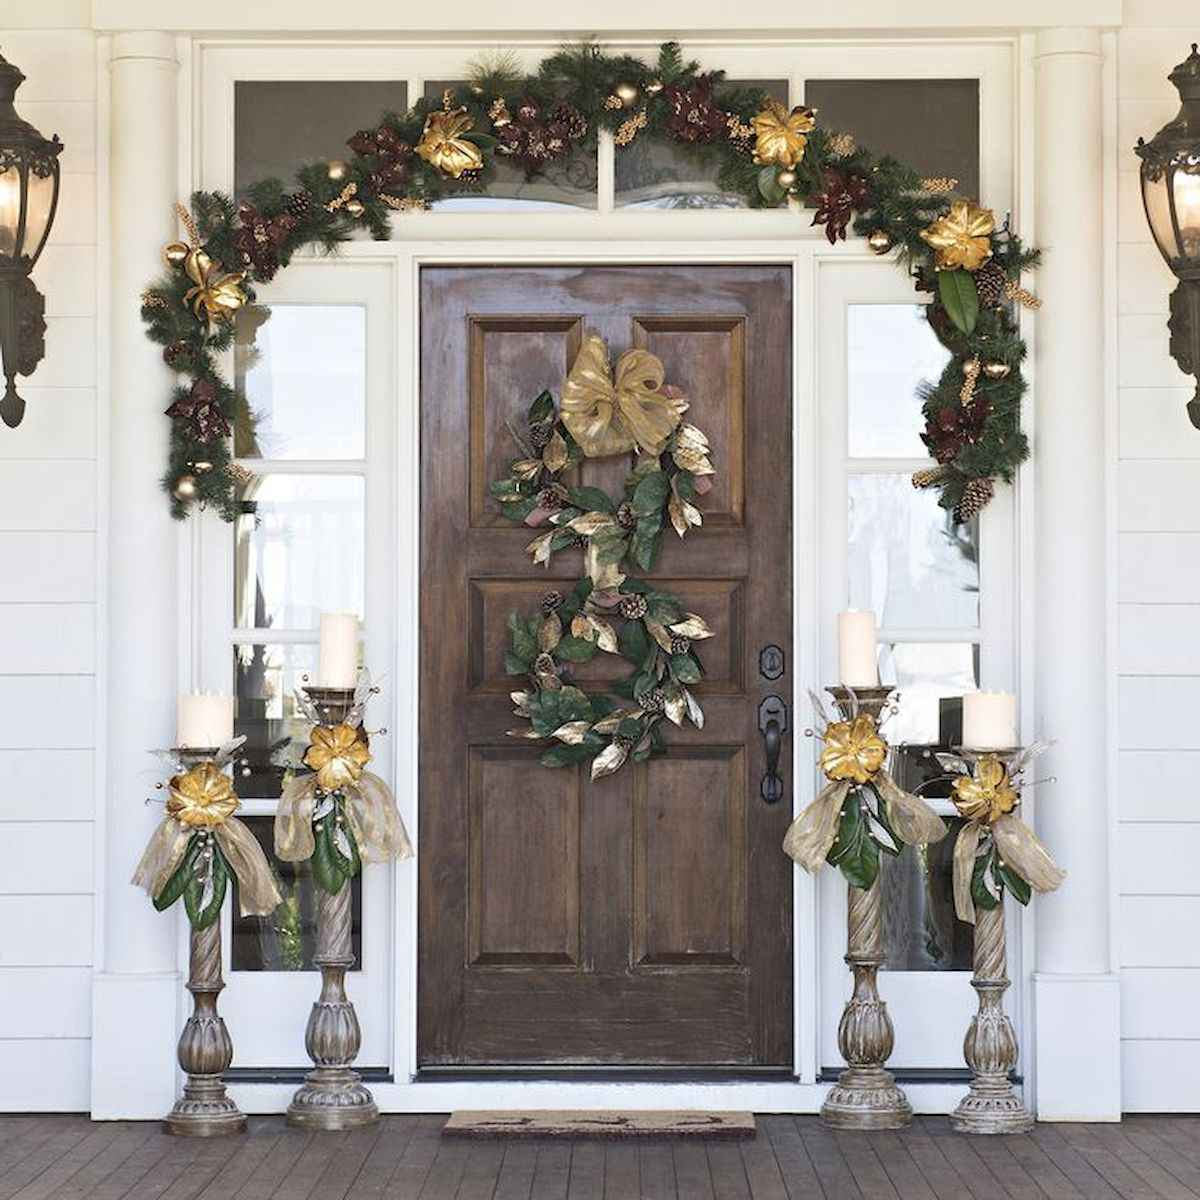 50 Awesome Christmas Front Porch Decor Ideas And Design (11)